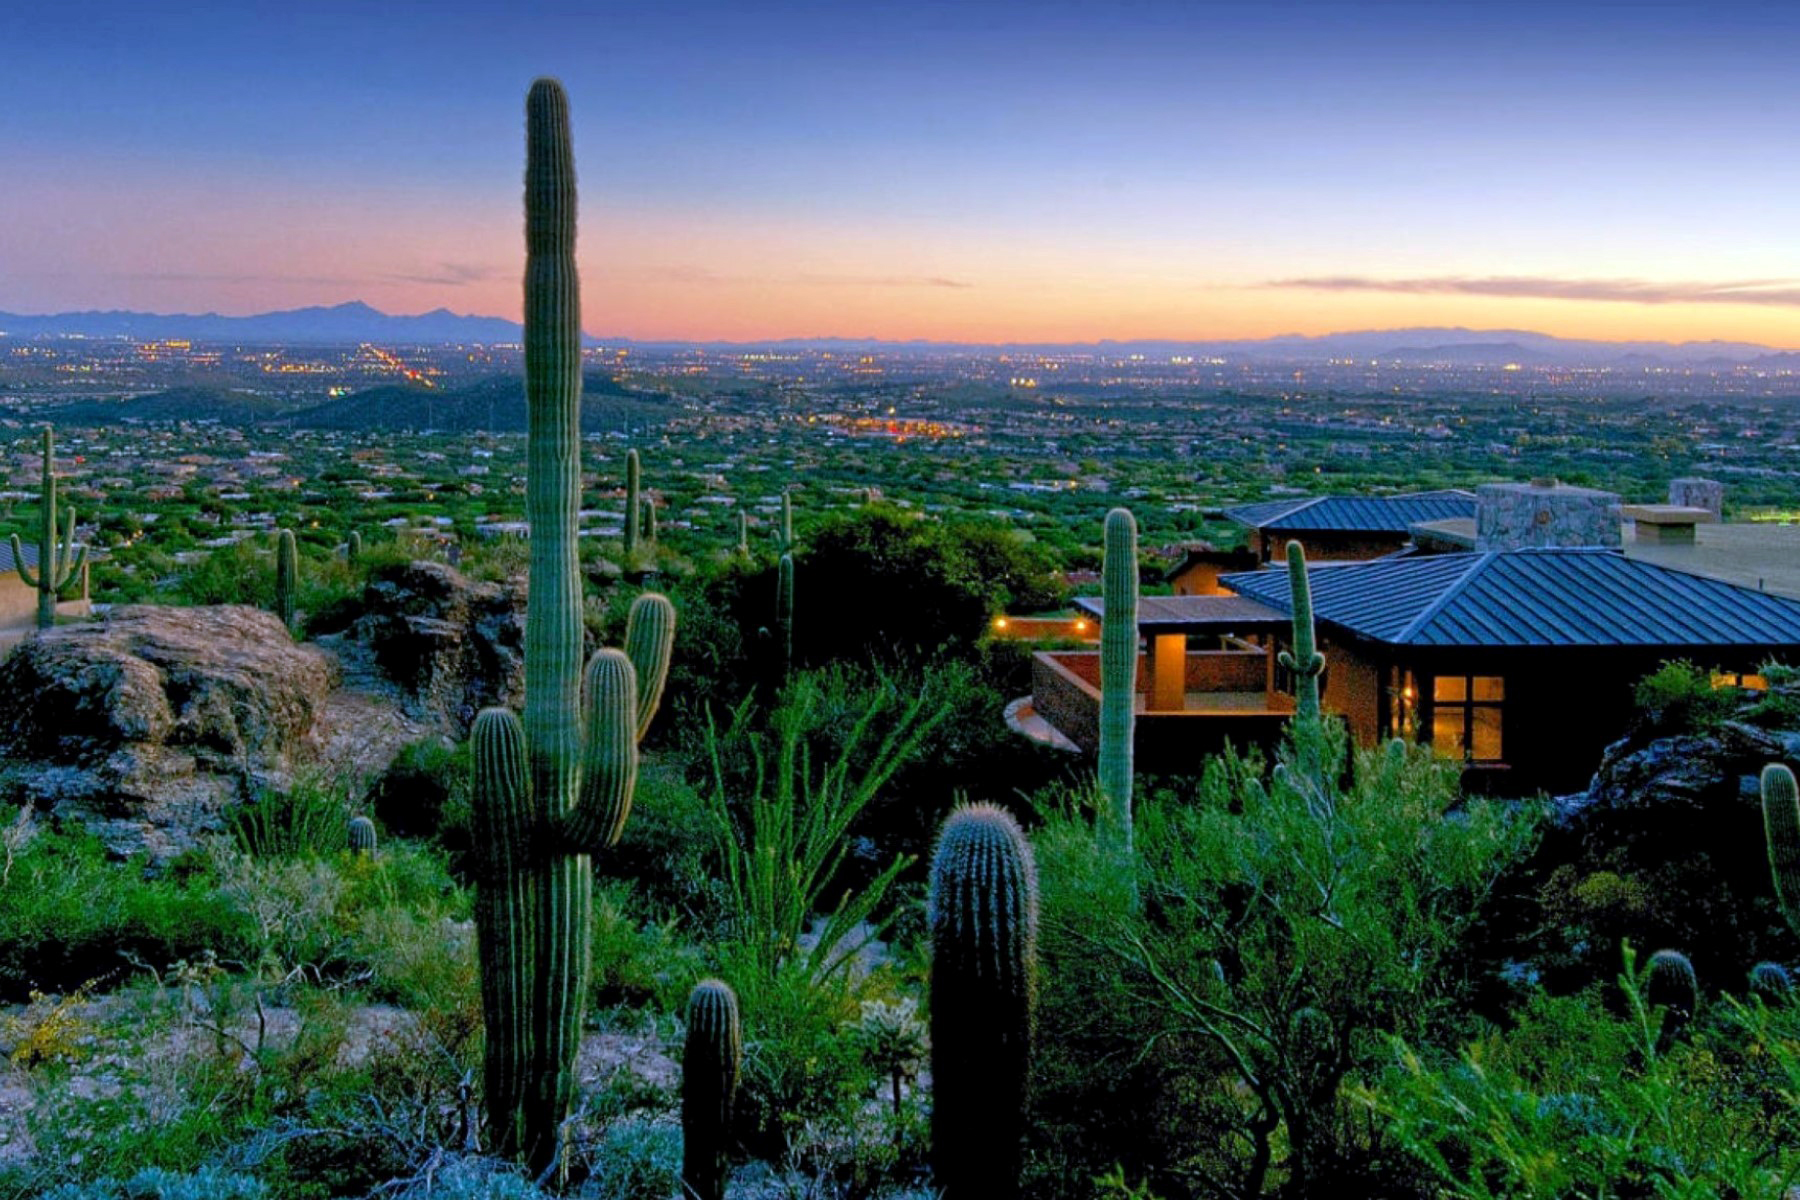 独户住宅 为 销售 在 The Crown Jewel In Tucson Real Estate with Uncomparable Views 6600 N Eagle Ridge Drive 图森, 亚利桑那州, 85718 美国